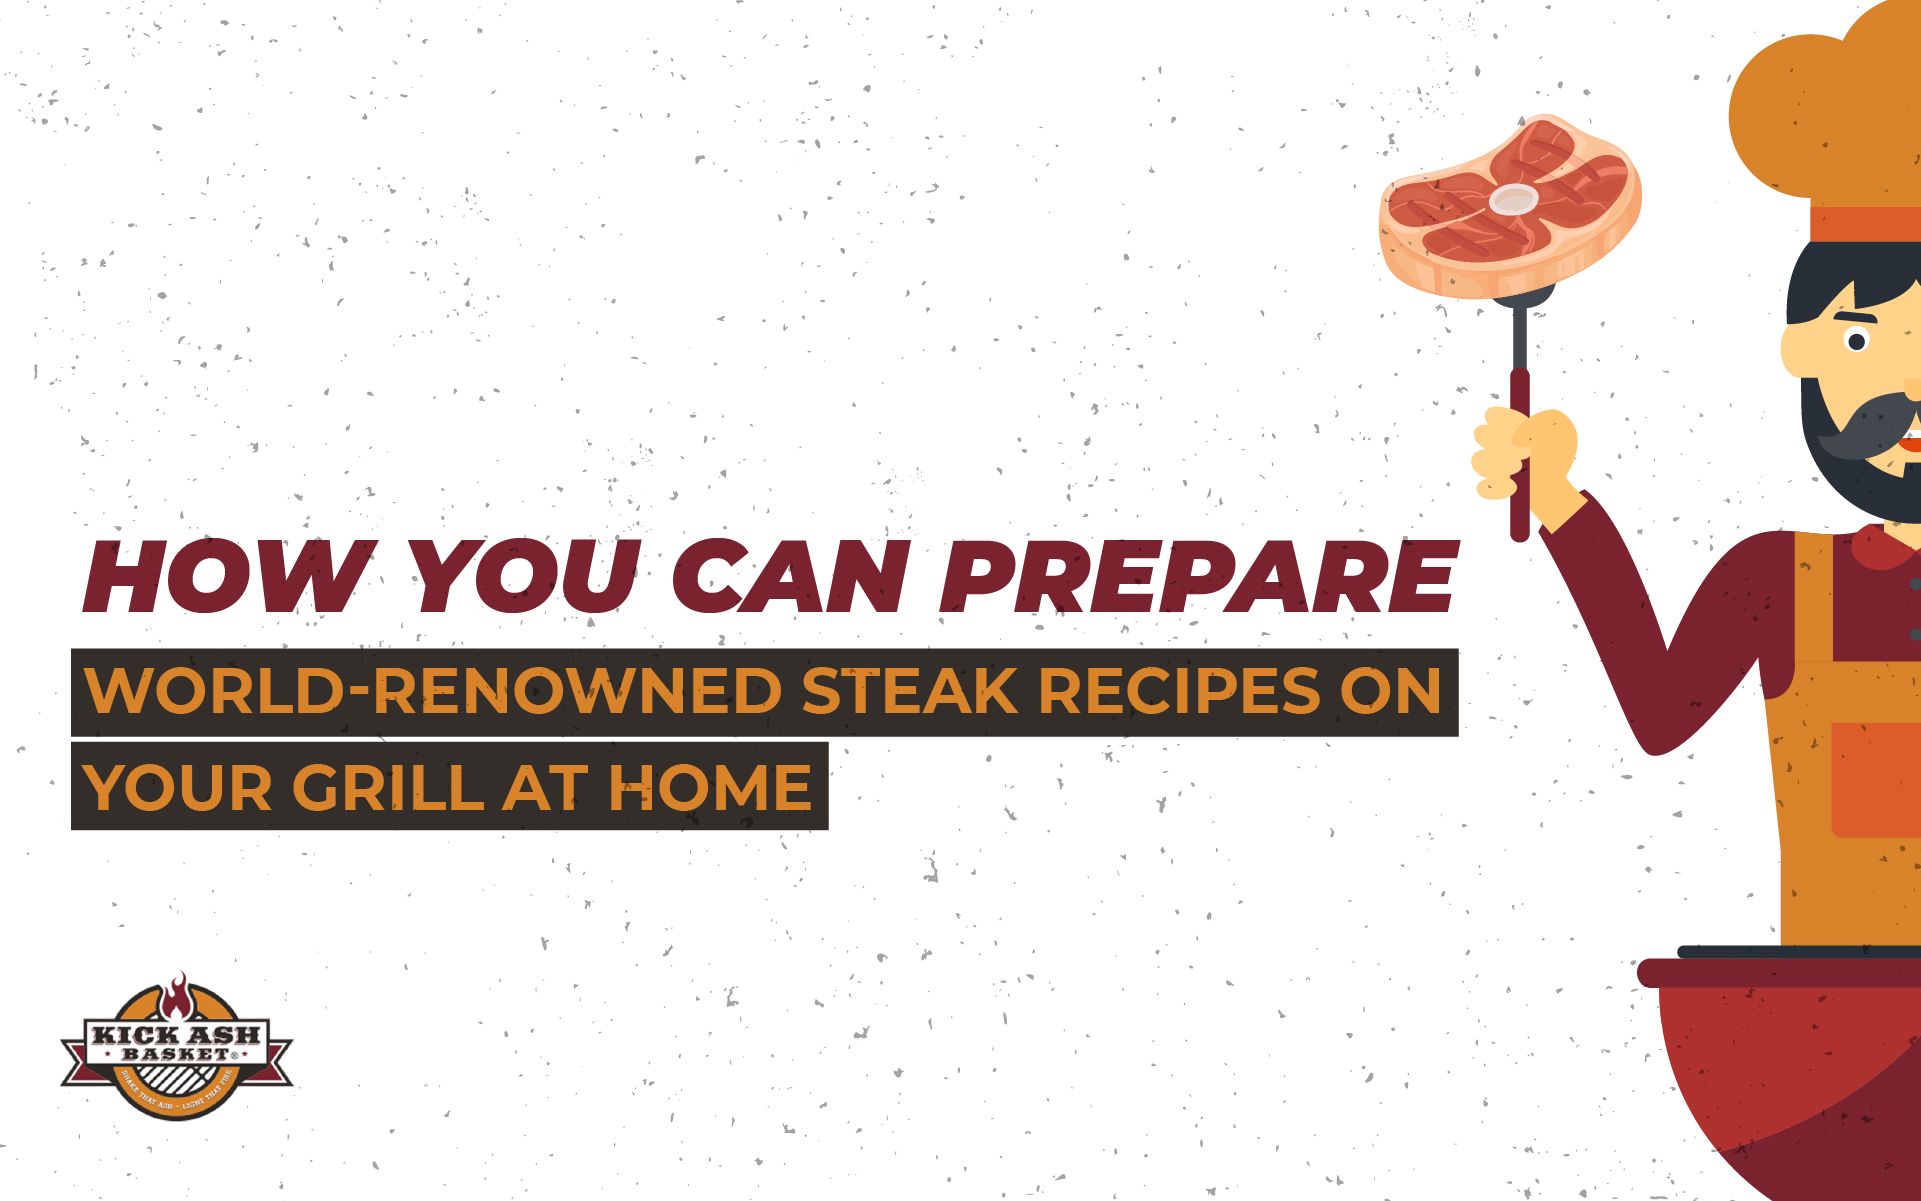 How You Can Prepare World-Renowned Steak Recipes on Your Grill at Home